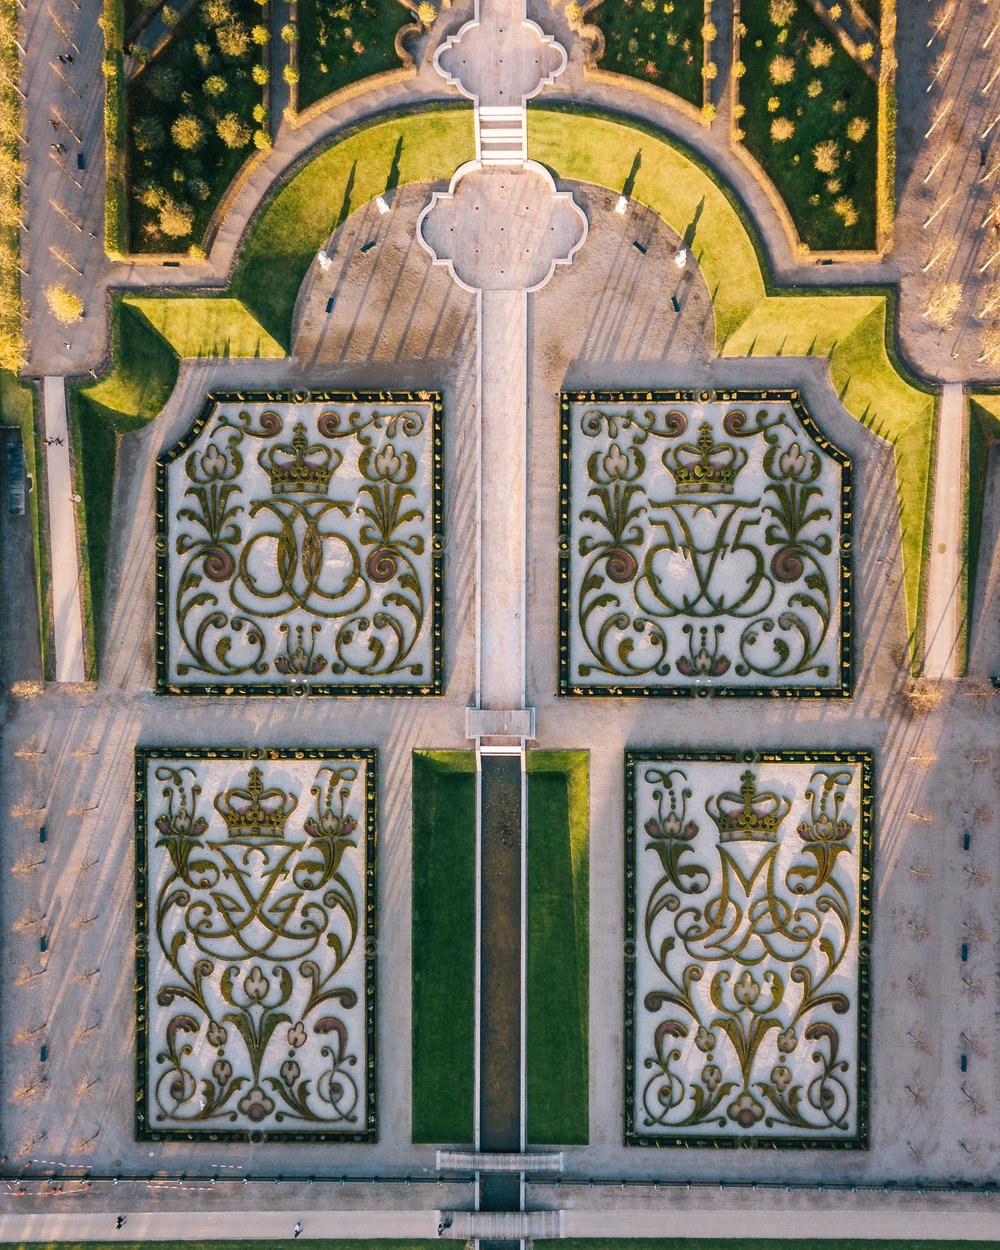 The garden as seen from straight above, with the monogram shaped flowerbeds clearly visible. The monograms belong to King Frederik IV, Christian VII, Frederik V and the current monarch Queen Margrethe II.